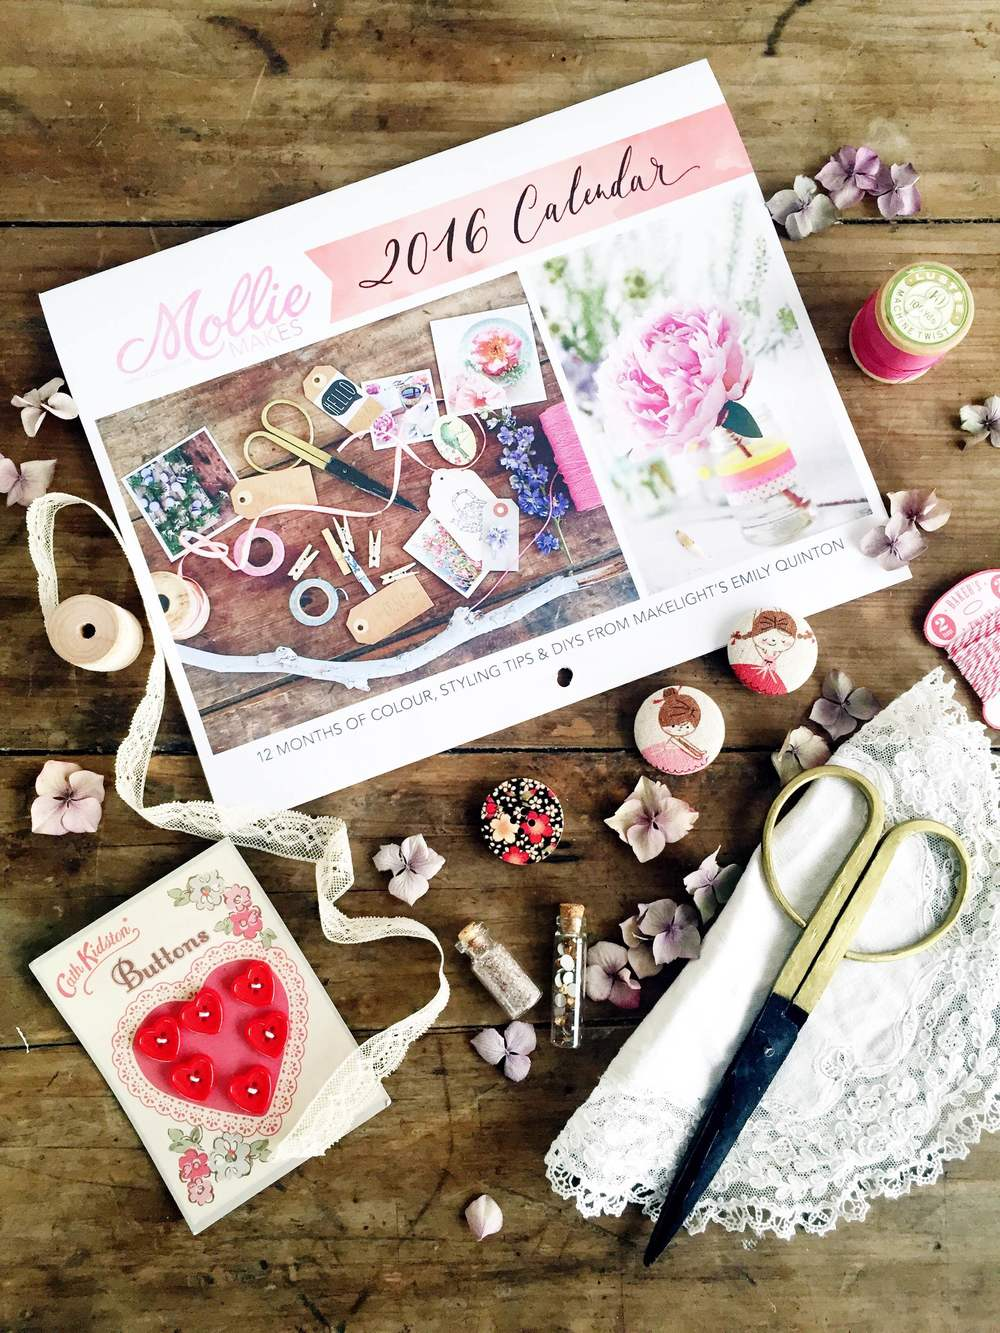 Mollie Makes 2016 Calendar by Emily Quinton | Makelight